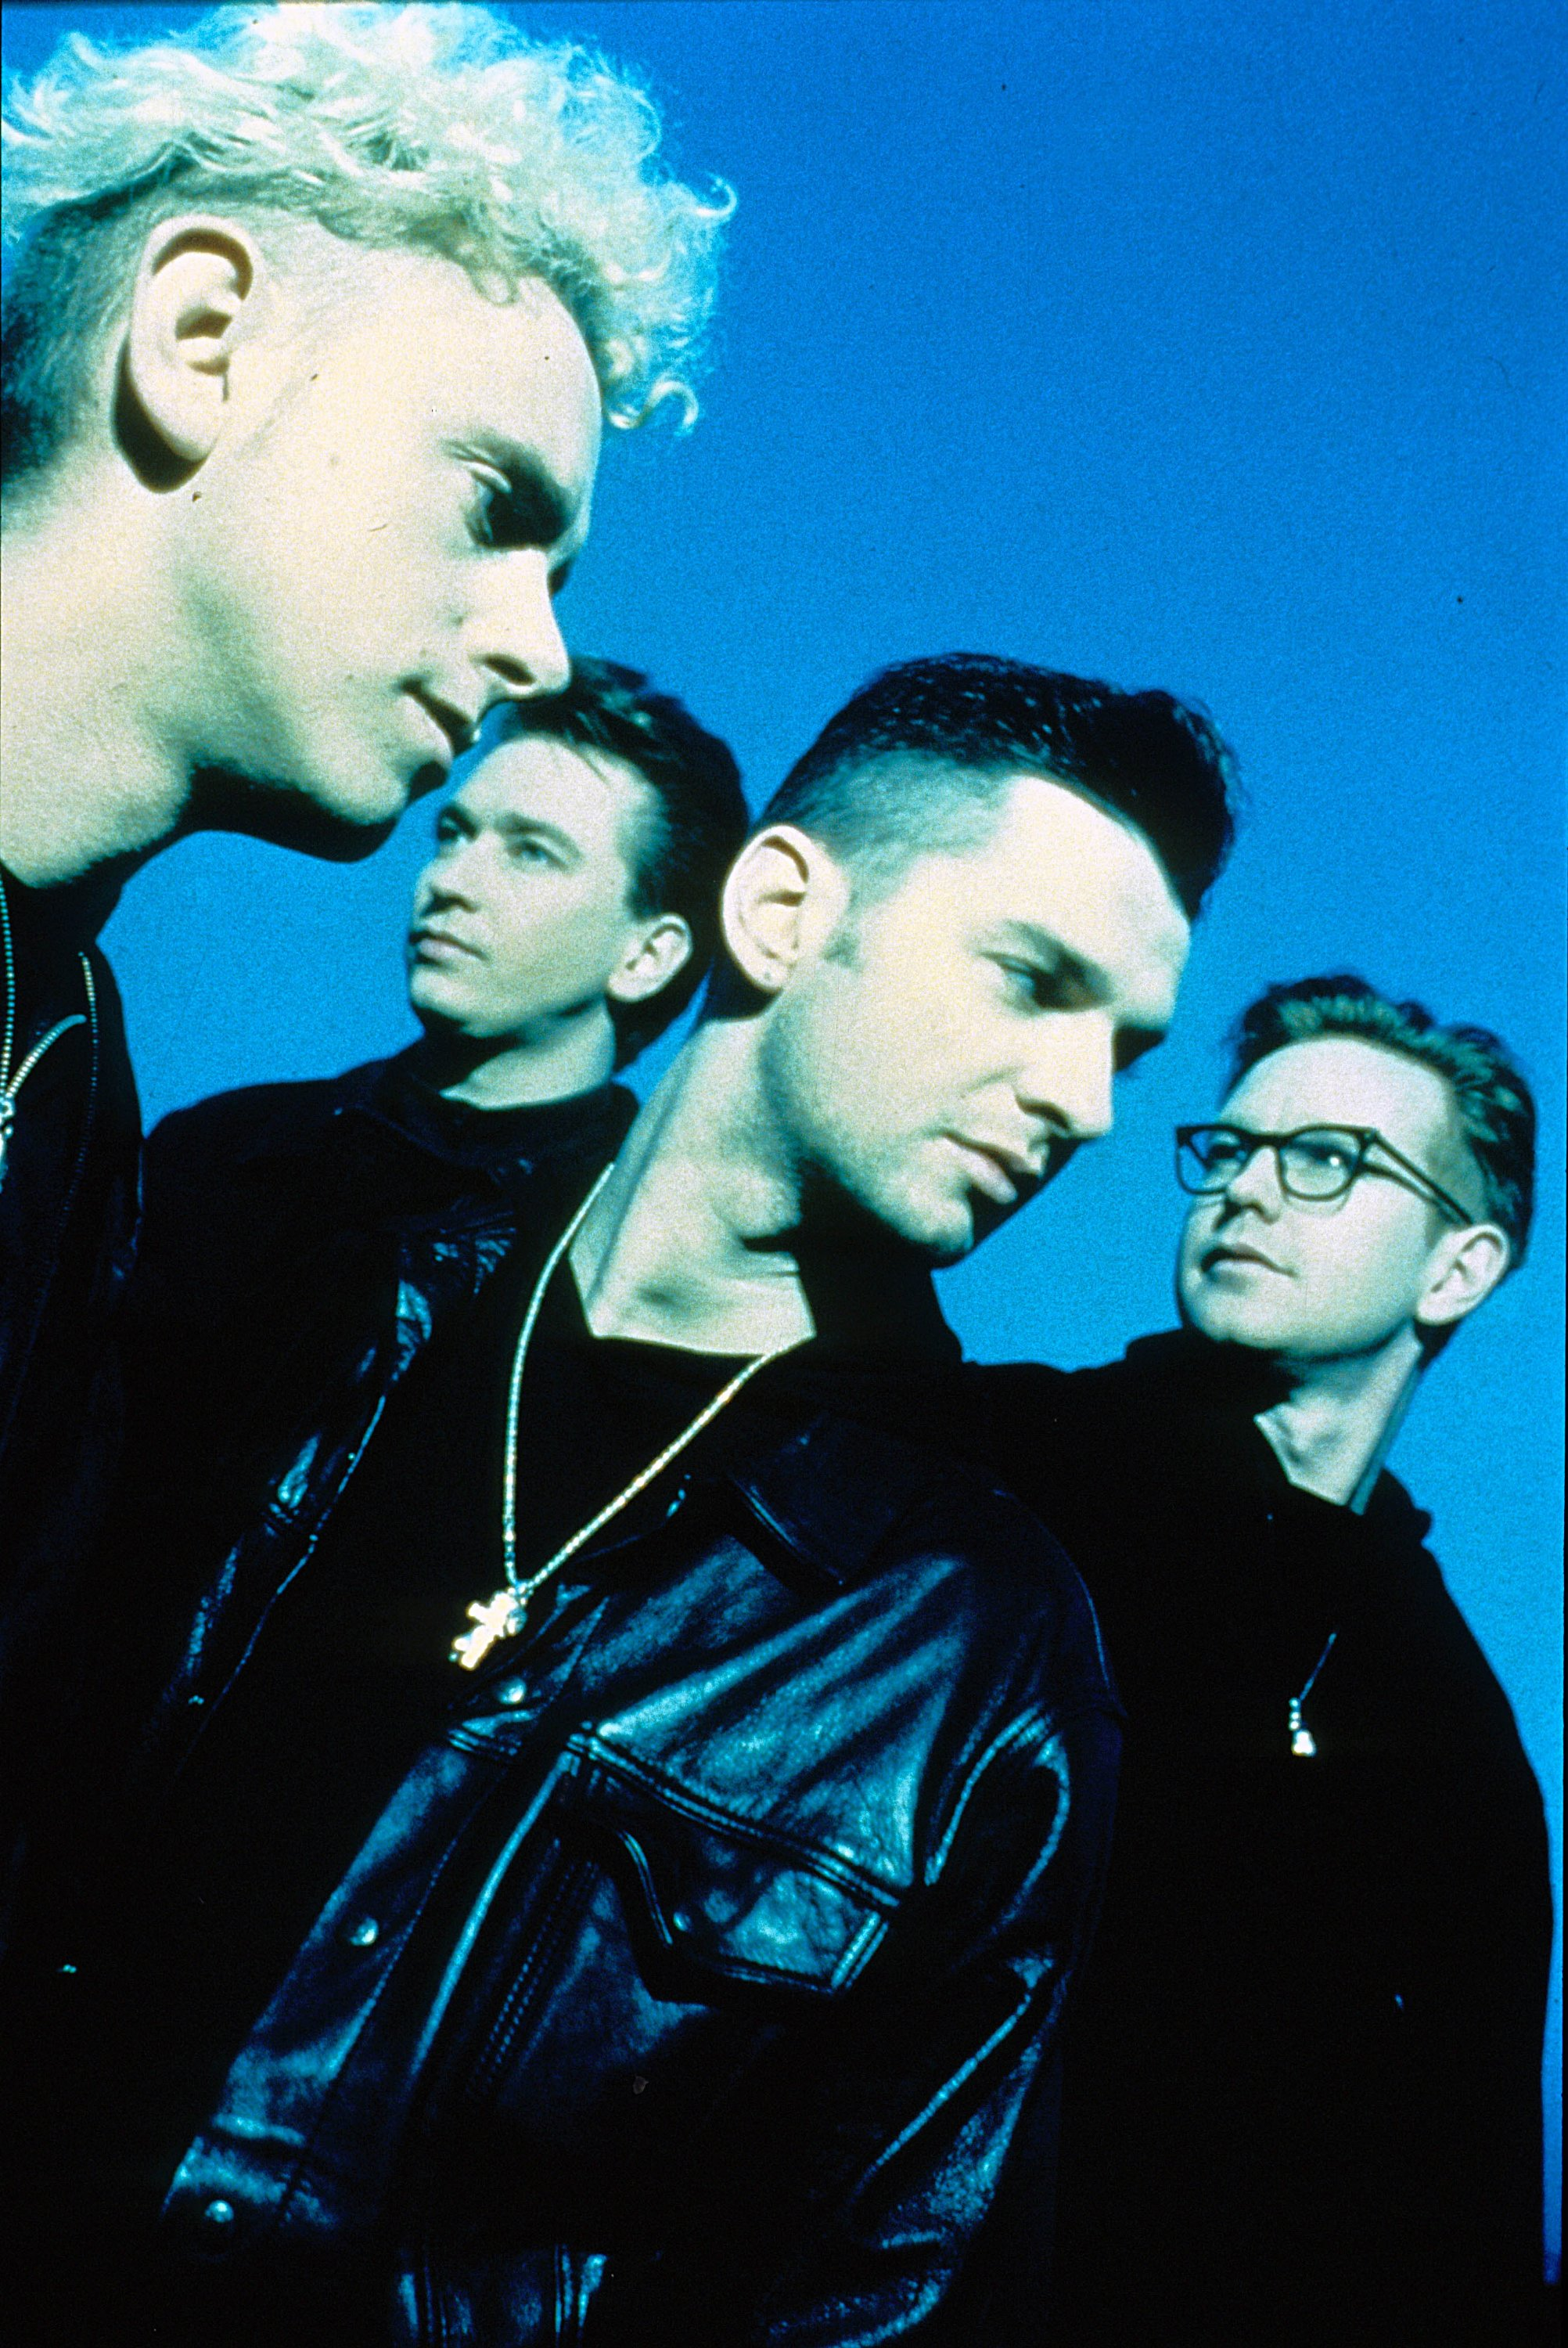 depeche mode photo 251 of 328 pics wallpaper photo 385381 theplace2. Black Bedroom Furniture Sets. Home Design Ideas